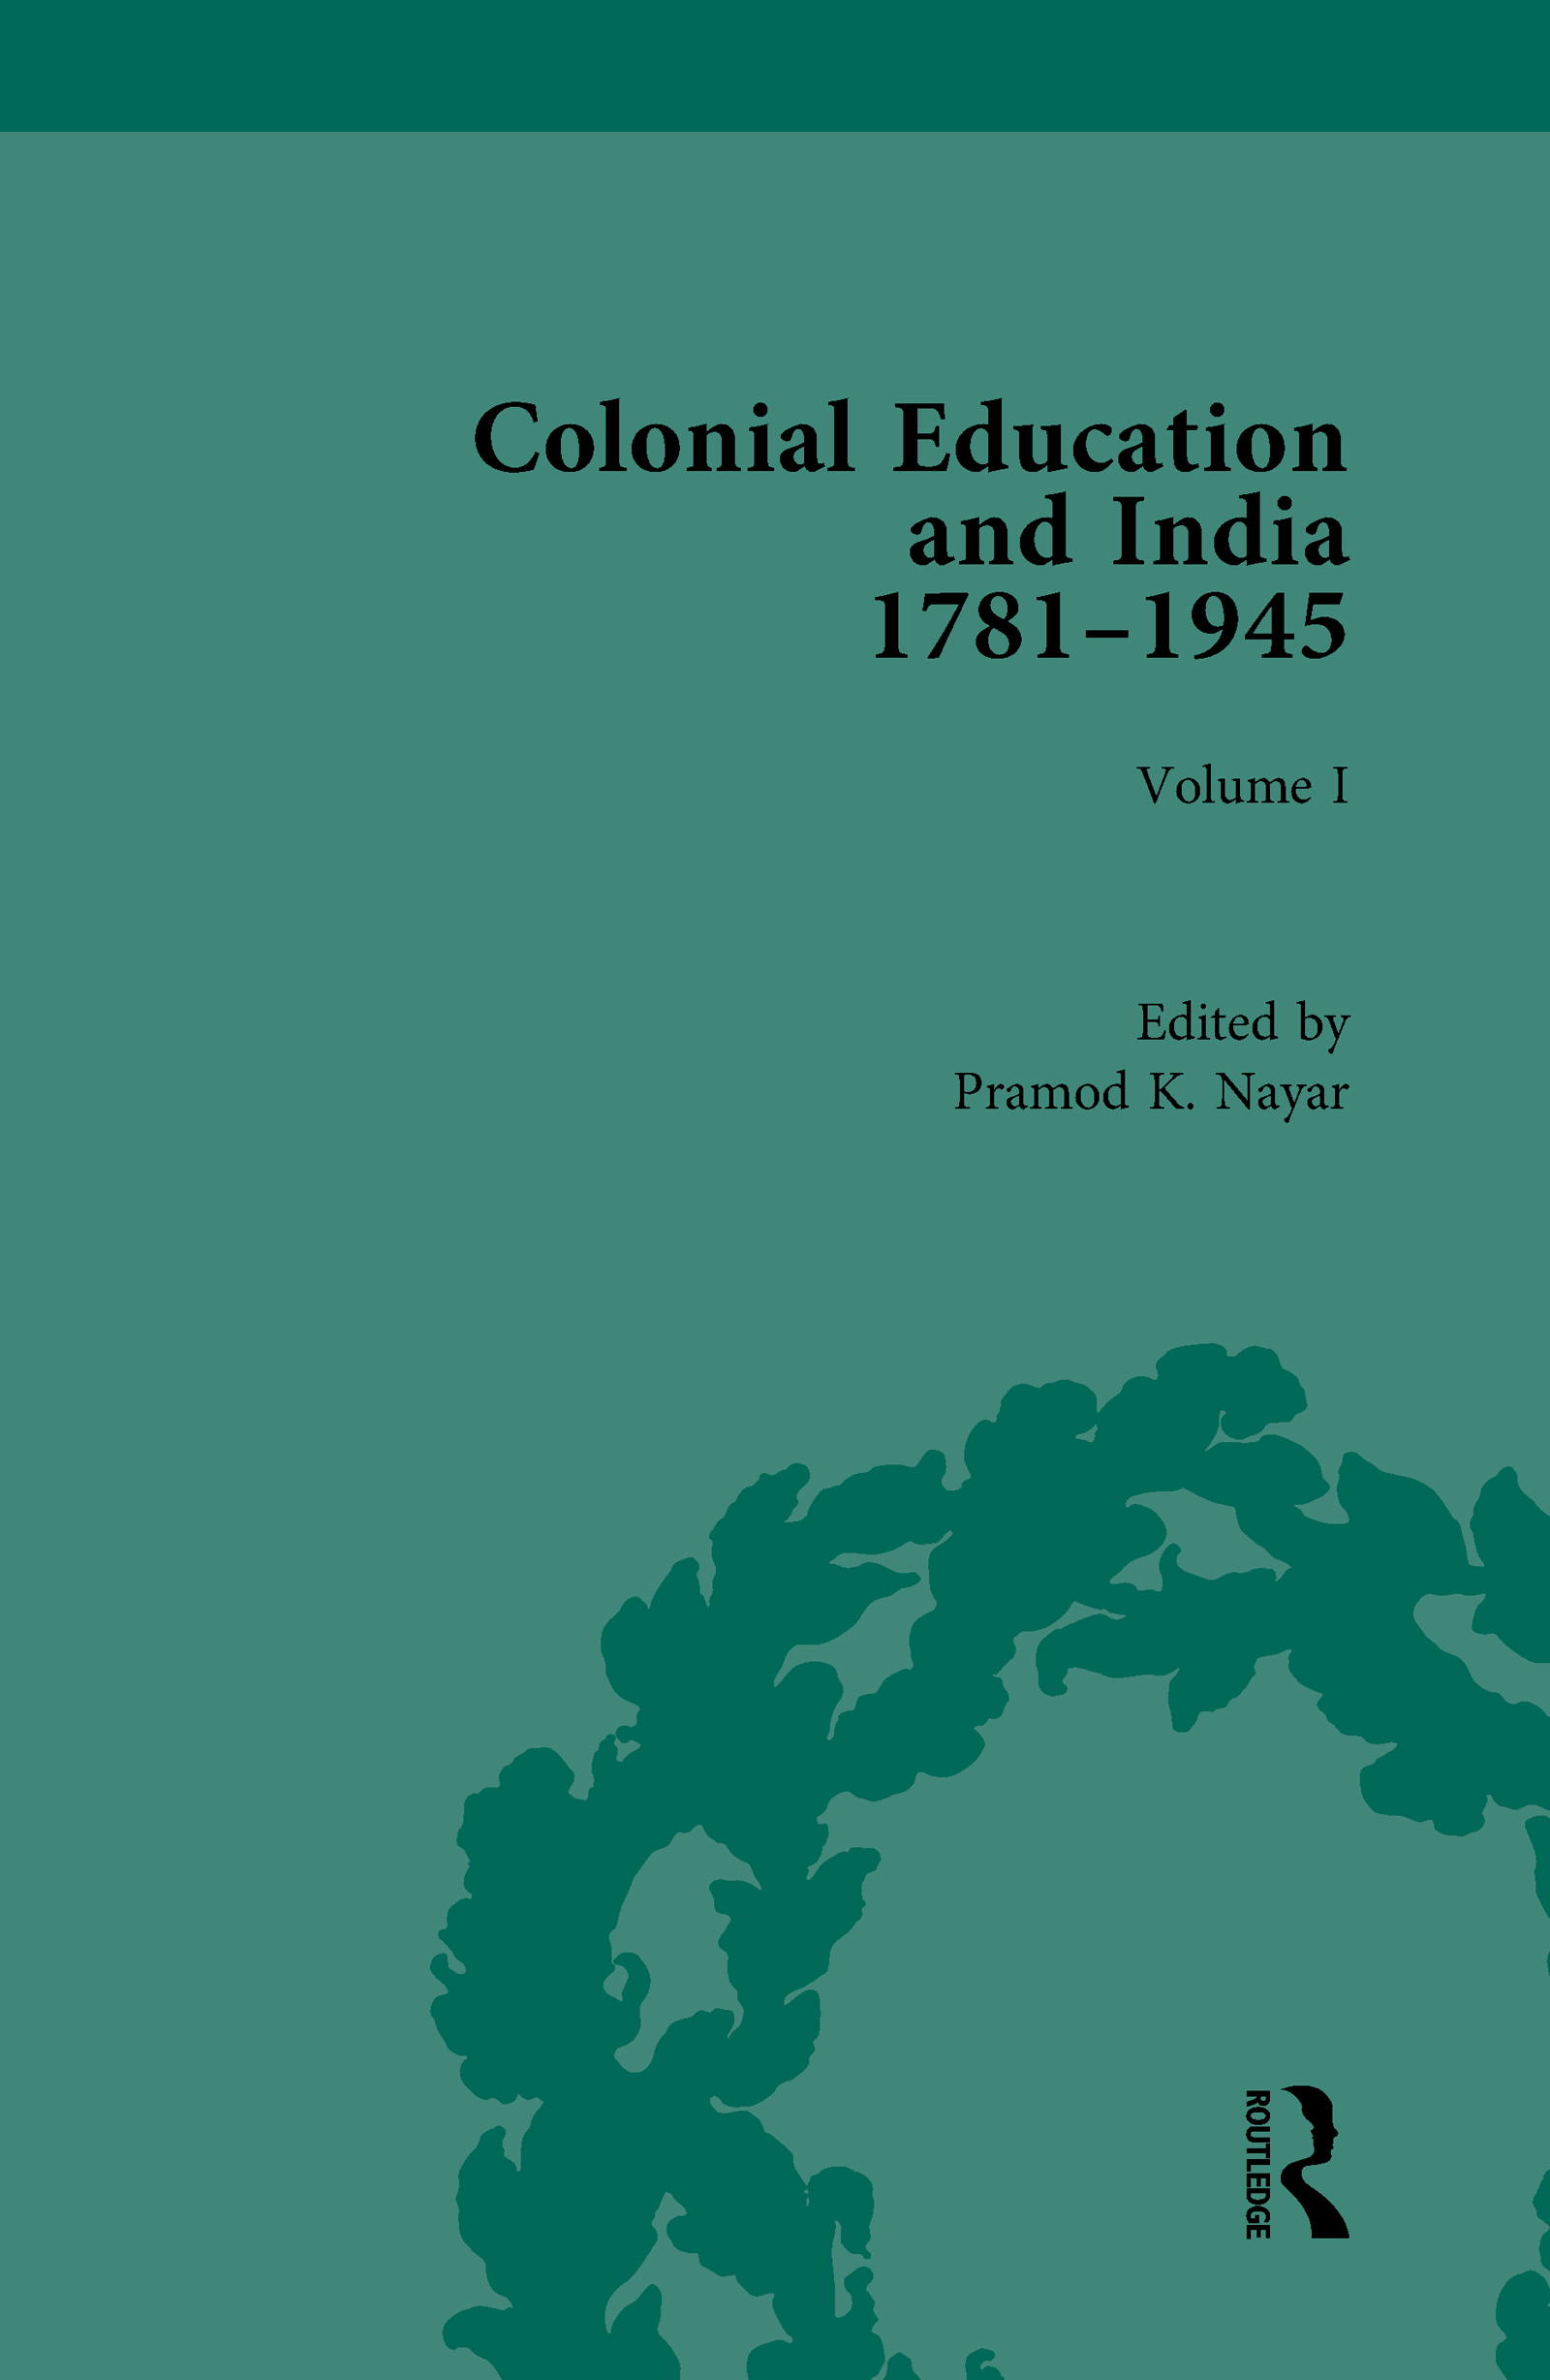 Colonial Education and India 1781-1945: Volume I book cover